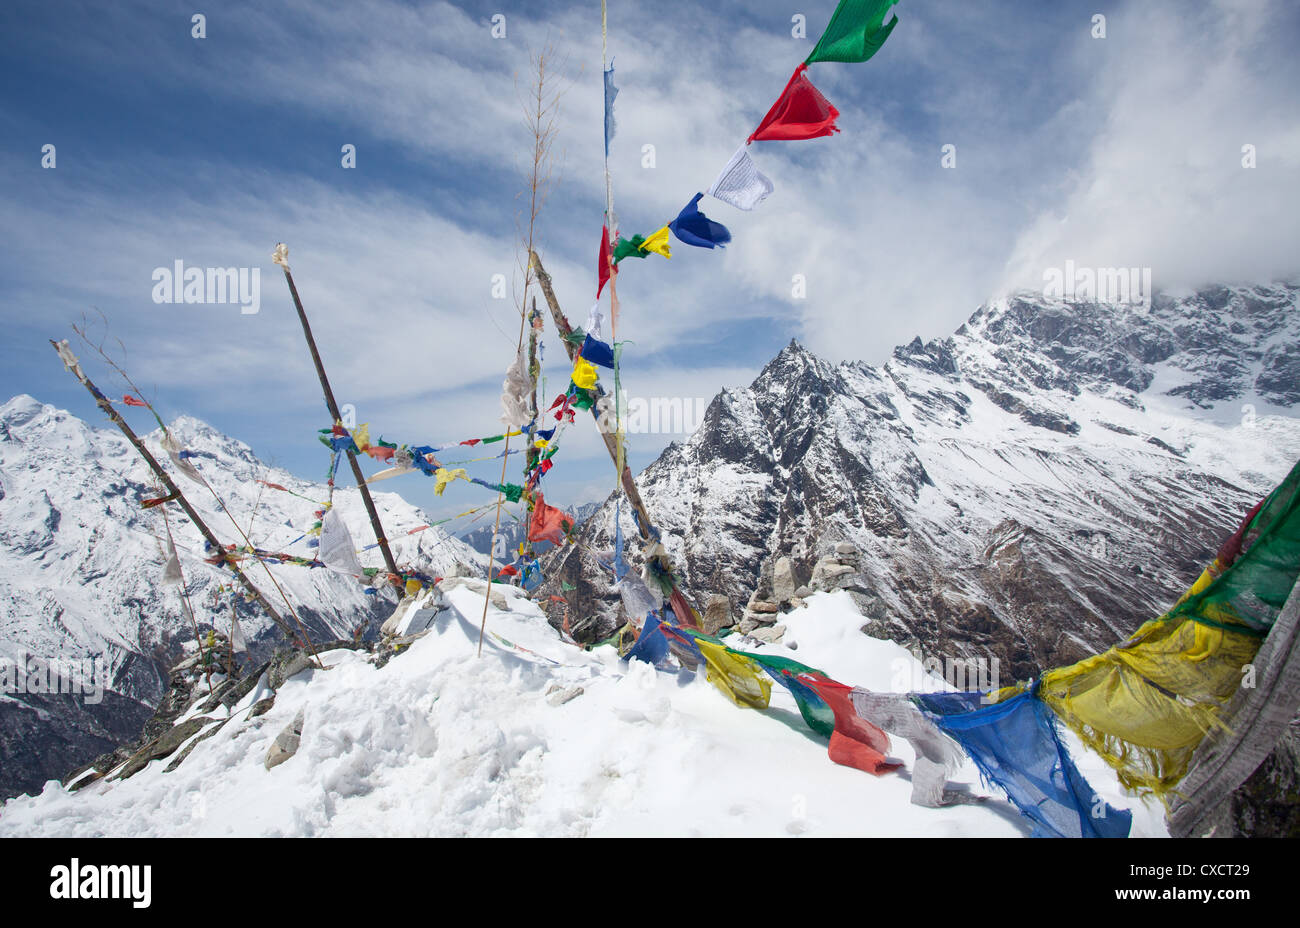 Prayerflags at the top of a mountain, Langtang Valley, Nepal - Stock Image